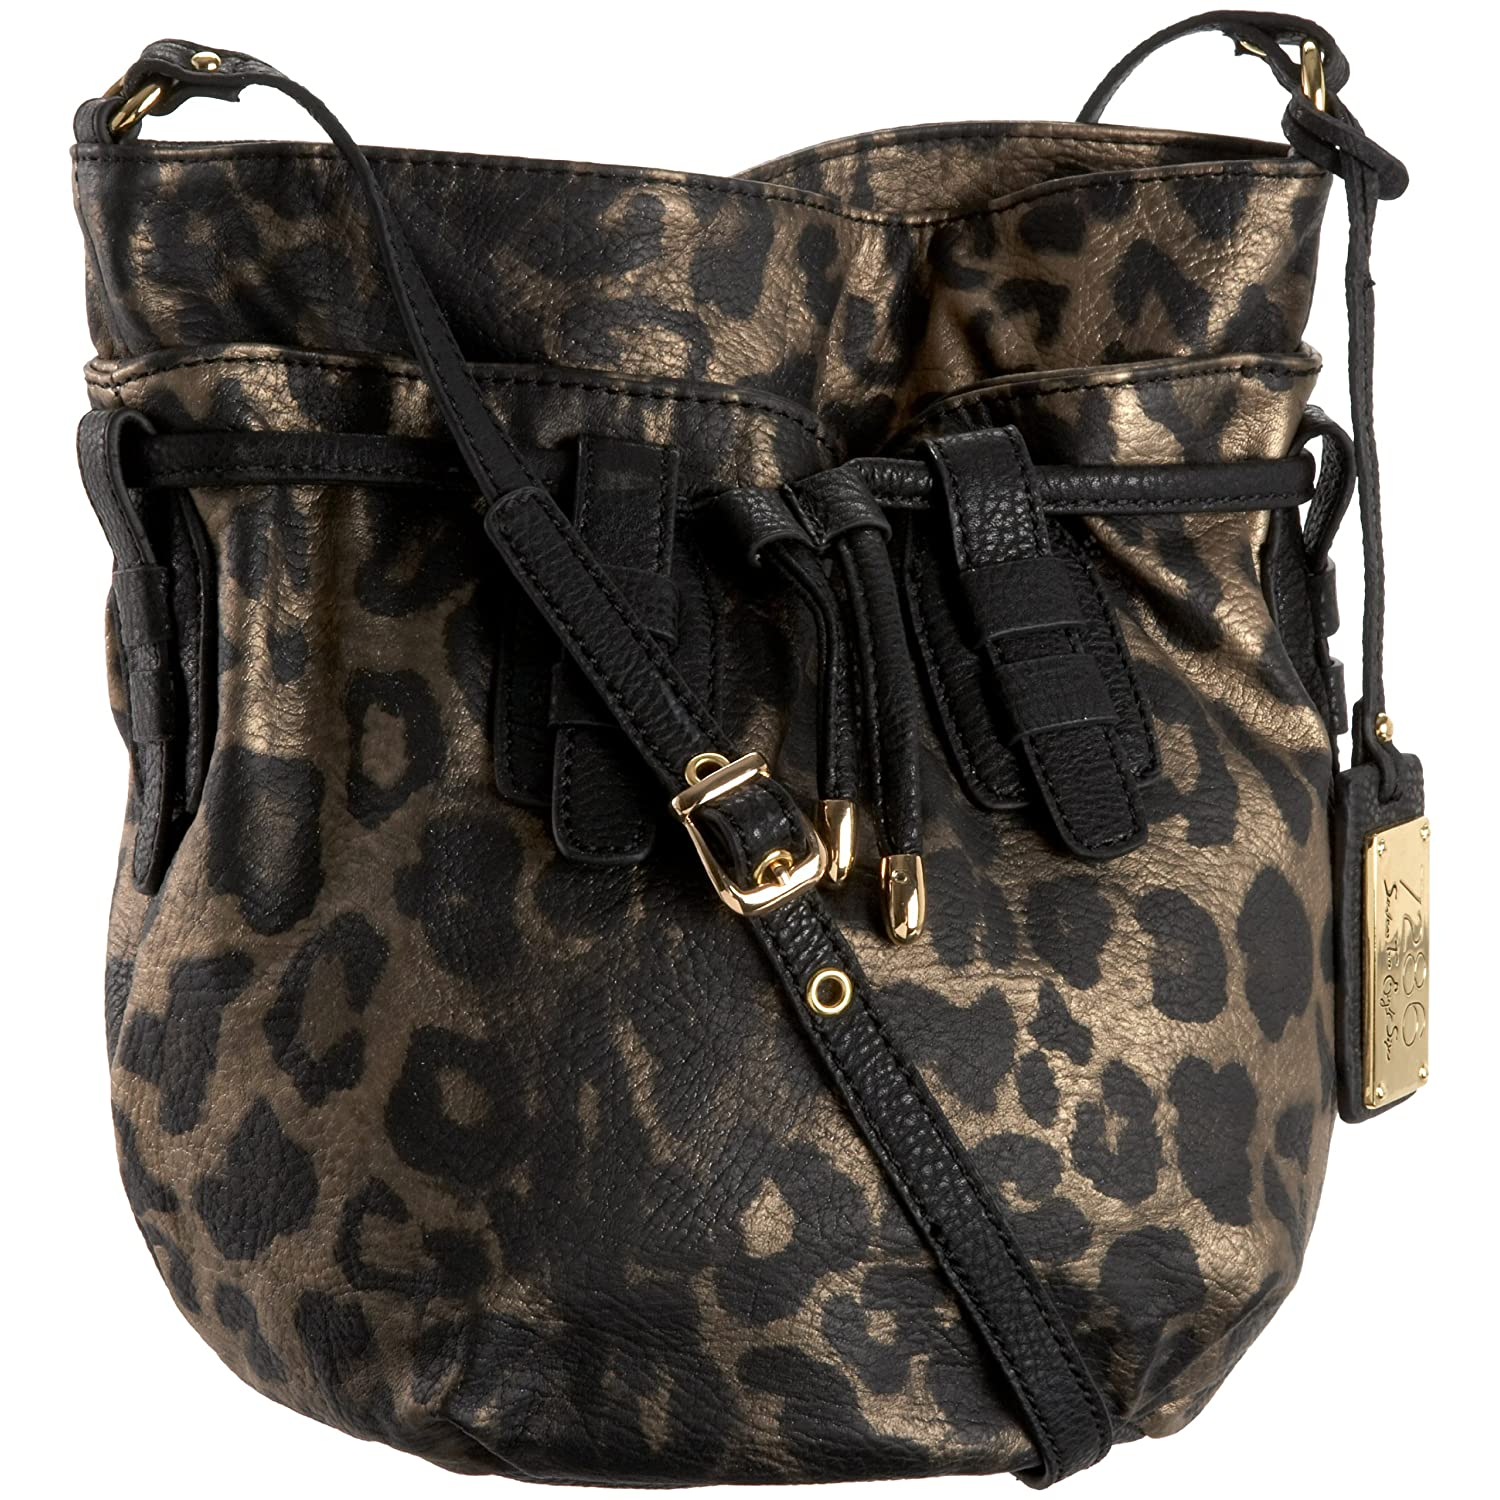 7286 by Lindsay Lohan - Ami Cross-Body